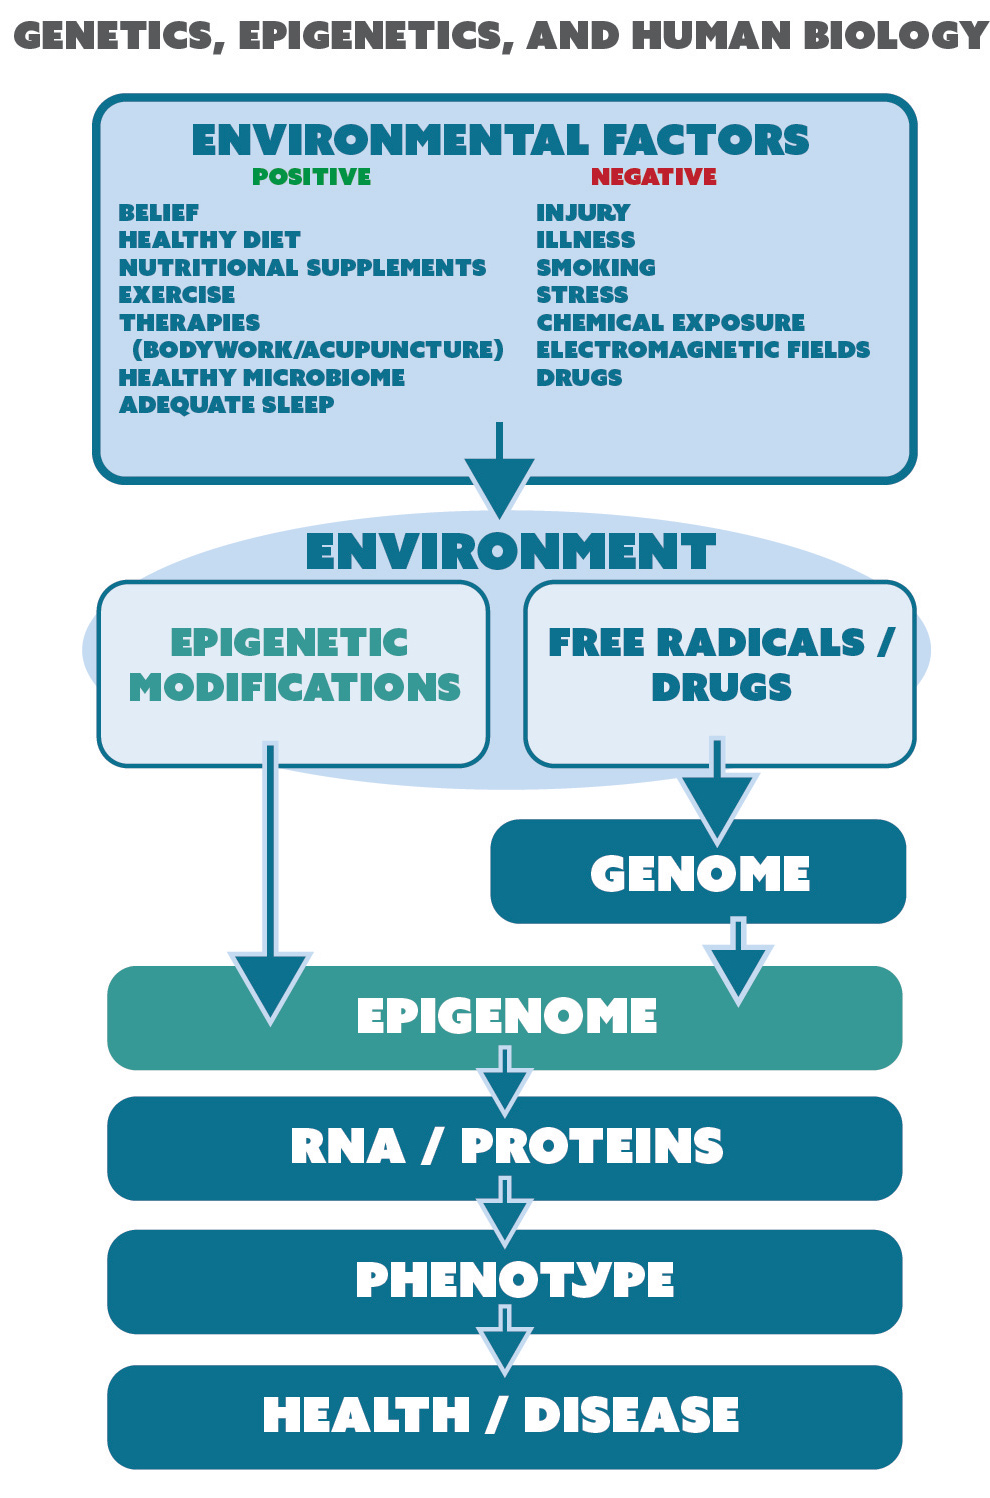 Genetics, Epigenetics, and Human Biology genetics